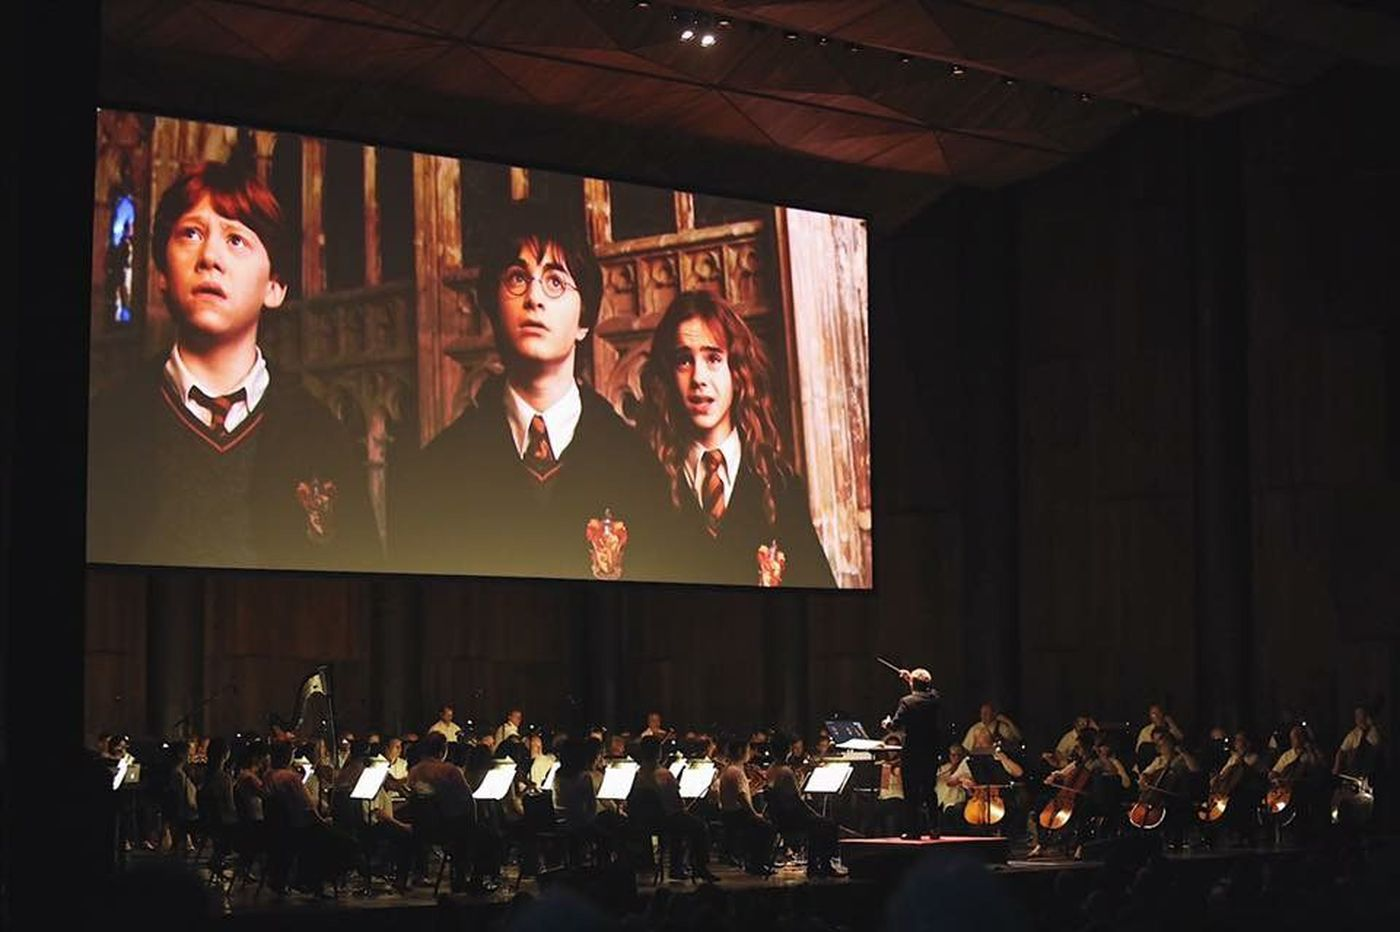 The real magic of Harry Potter at the Mann doesn't come from wizards